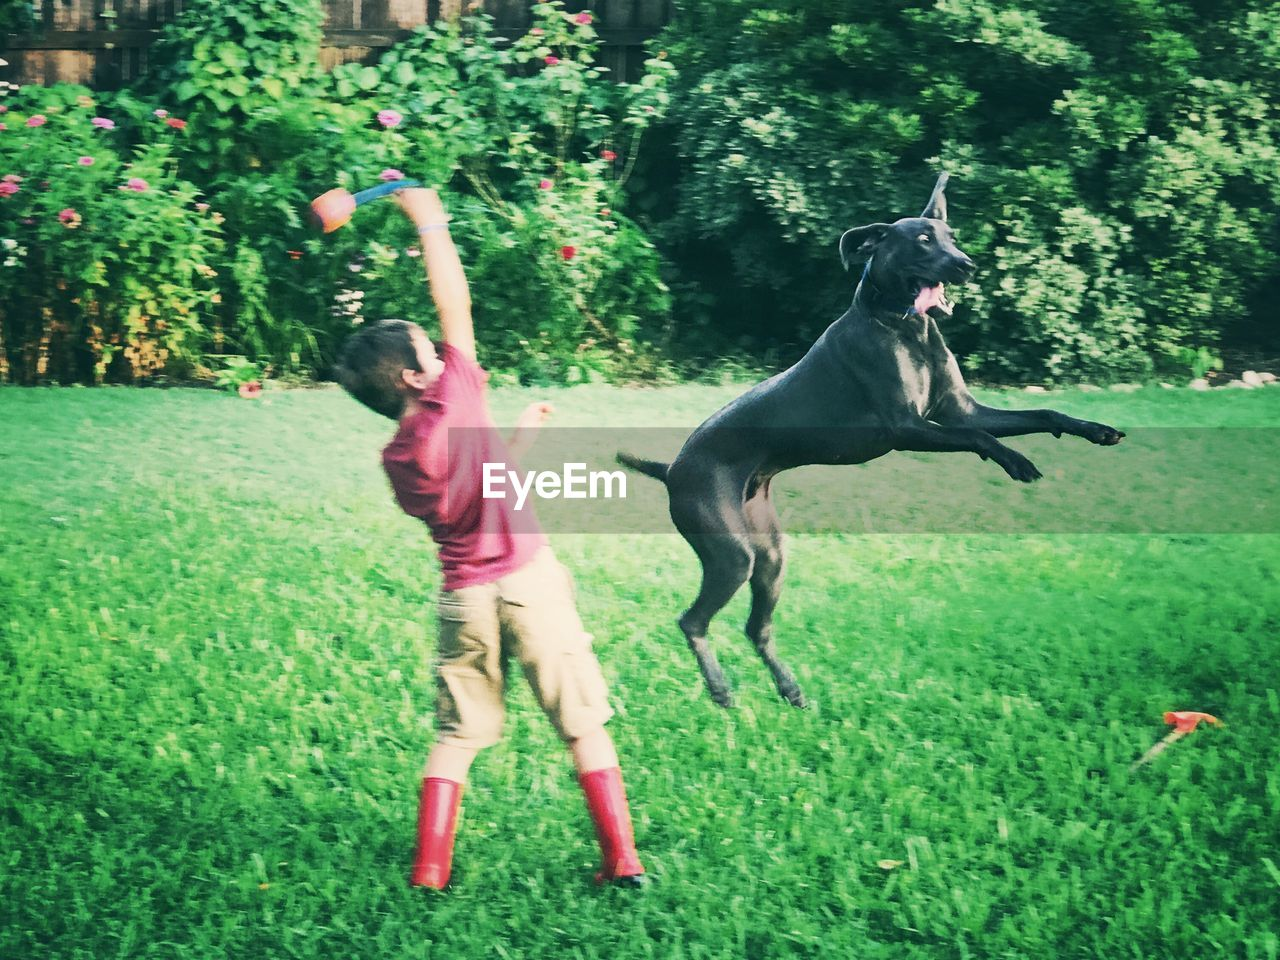 grass, pets, dog, animal themes, motion, plant, outdoors, full length, jumping, mid-air, one animal, domestic animals, running, playing, day, growth, green color, labrador retriever, mammal, tree, nature, one person, real people, black labrador, weimaraner, people